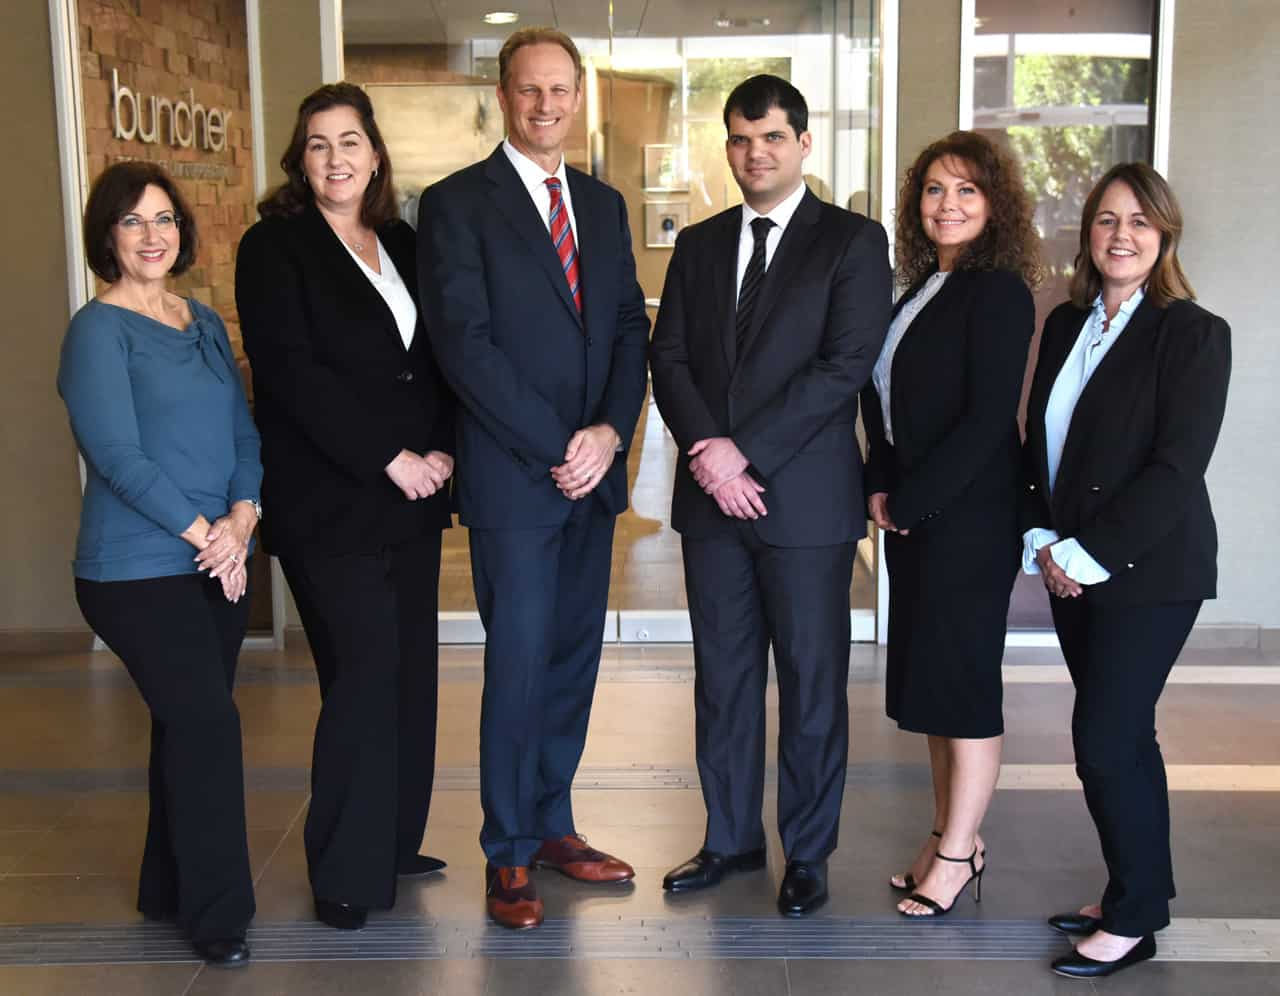 Buncher Family Law staff